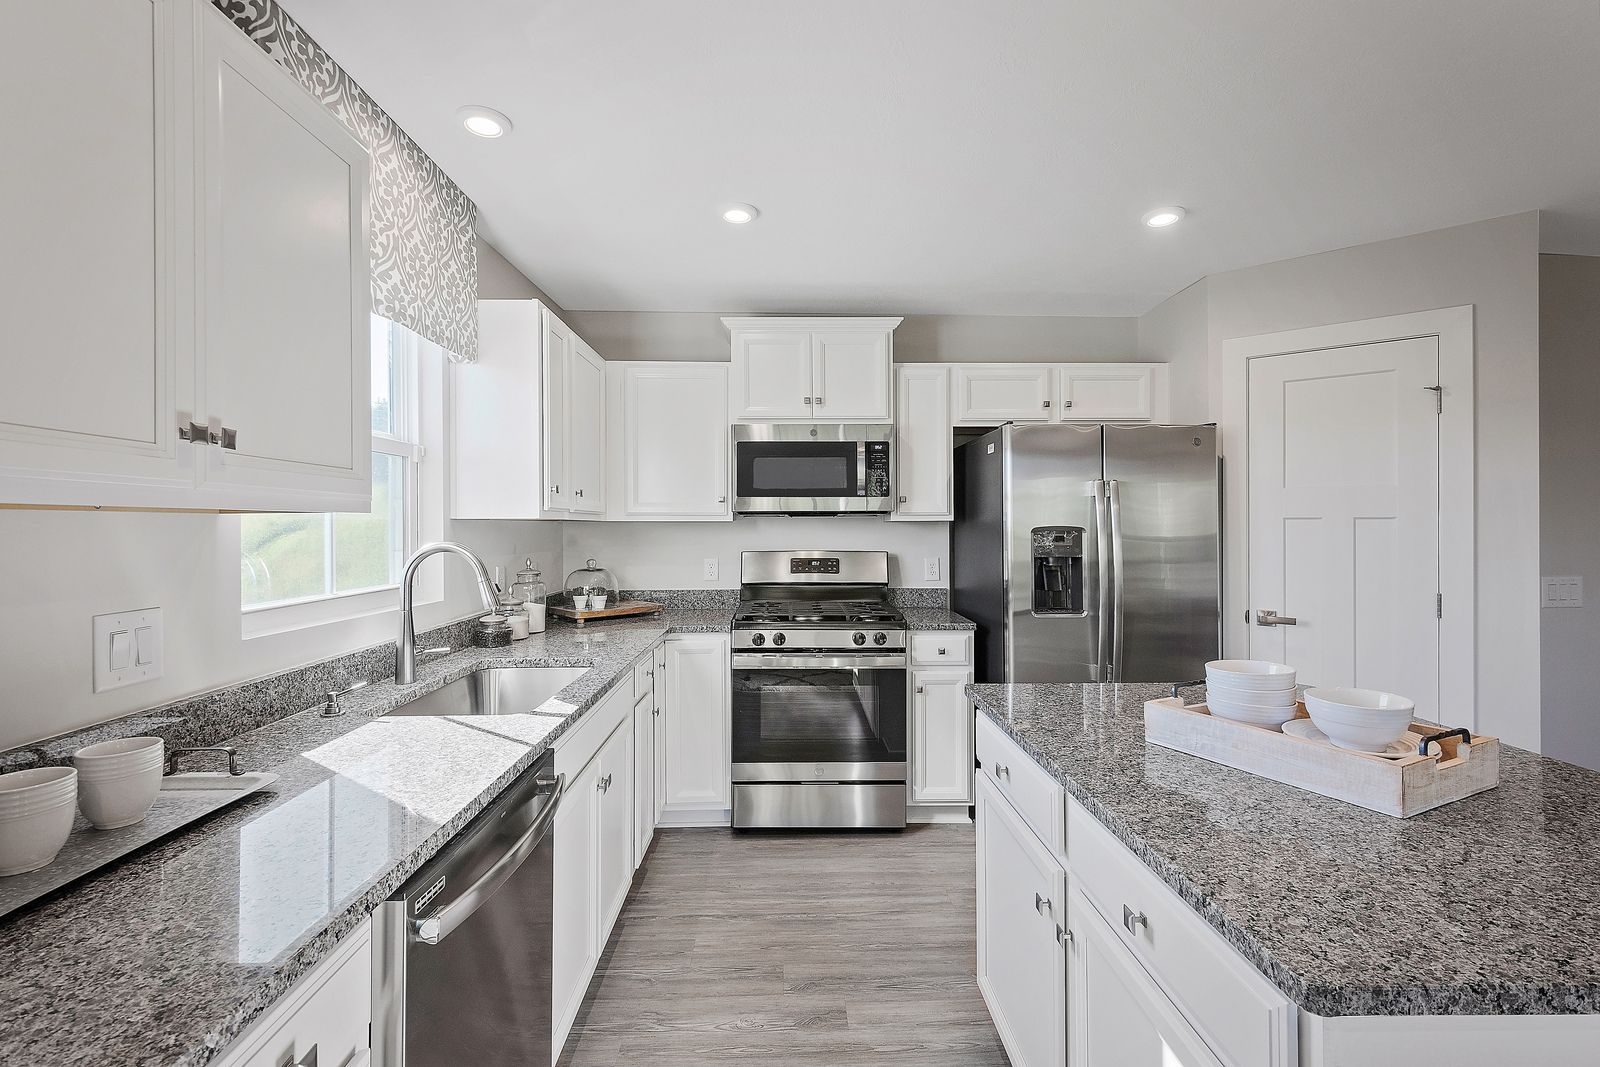 Kitchen featured in the Barbados Isle By Ryan Homes in Indianapolis, IN